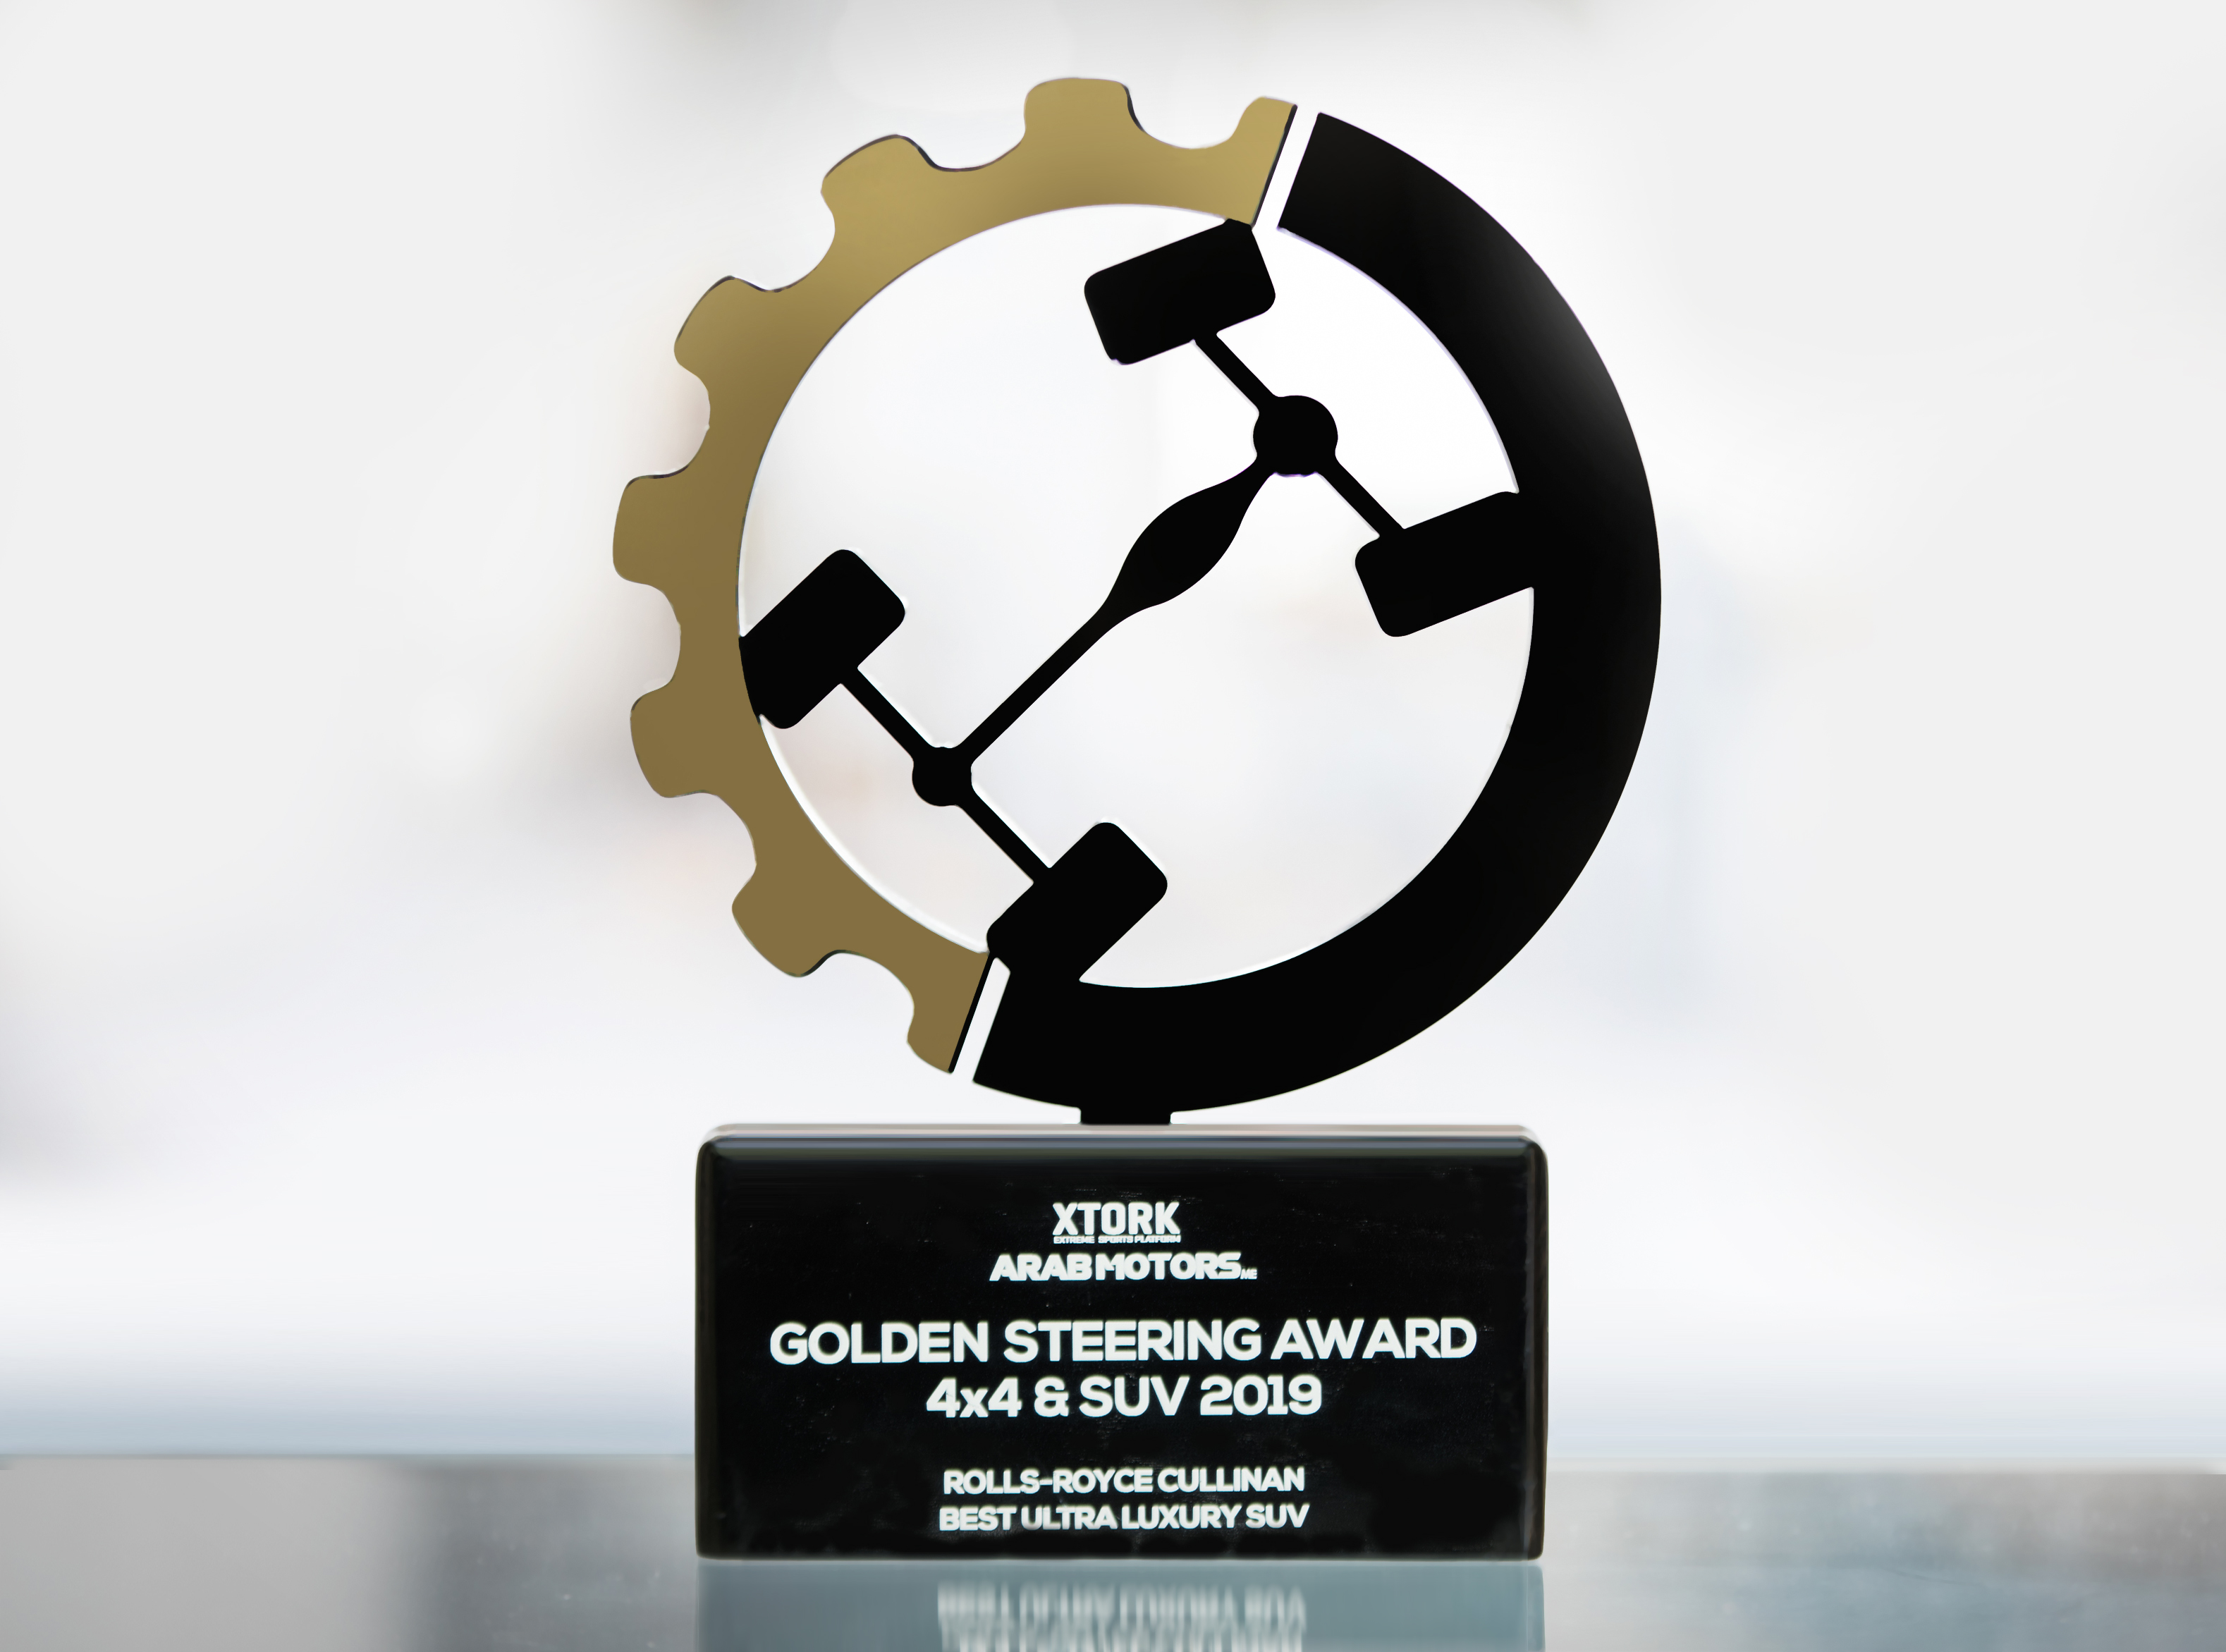 ROLLS-ROYCE CULLINAN WINS 'BEST ULTRA LUXURY SUV' OF THE YEAR AT THE GOLDEN STEERING AWARDS